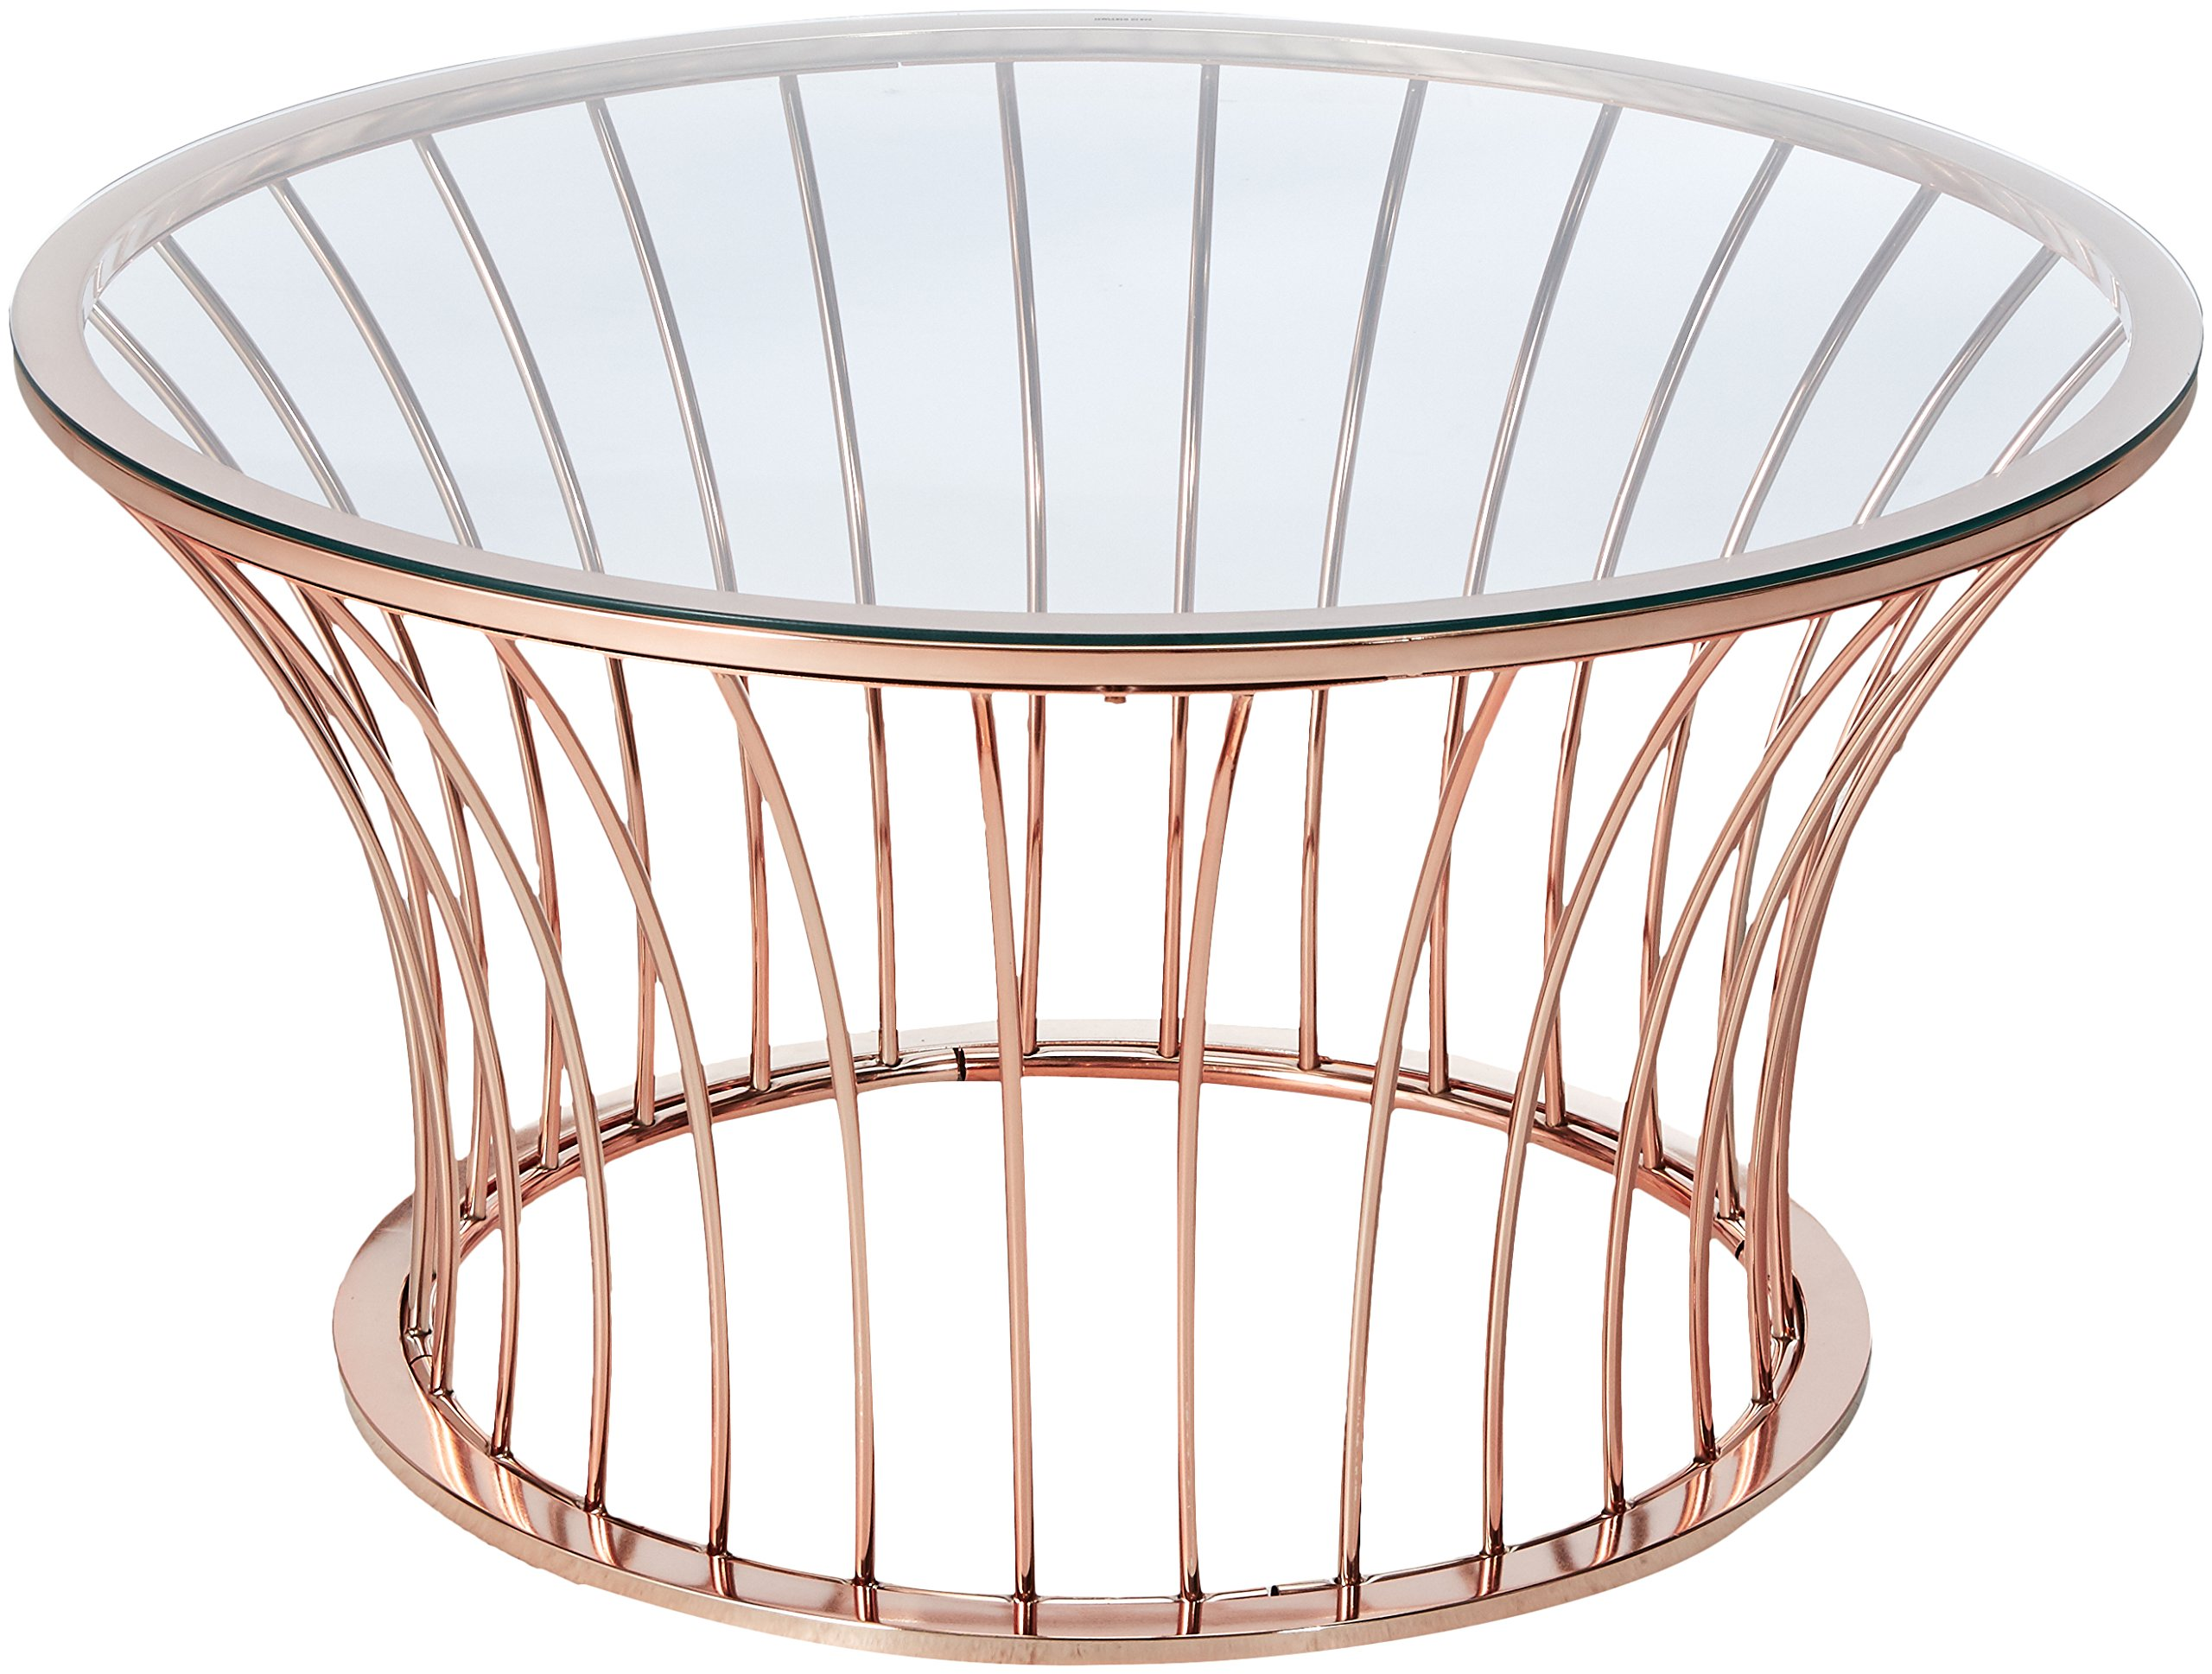 247SHOPATHOME coffee-tables, Rose Gold - Style: contemporary Finish: Rose Gold Slatted design - living-room-furniture, living-room, coffee-tables - 81j78d07VNL -